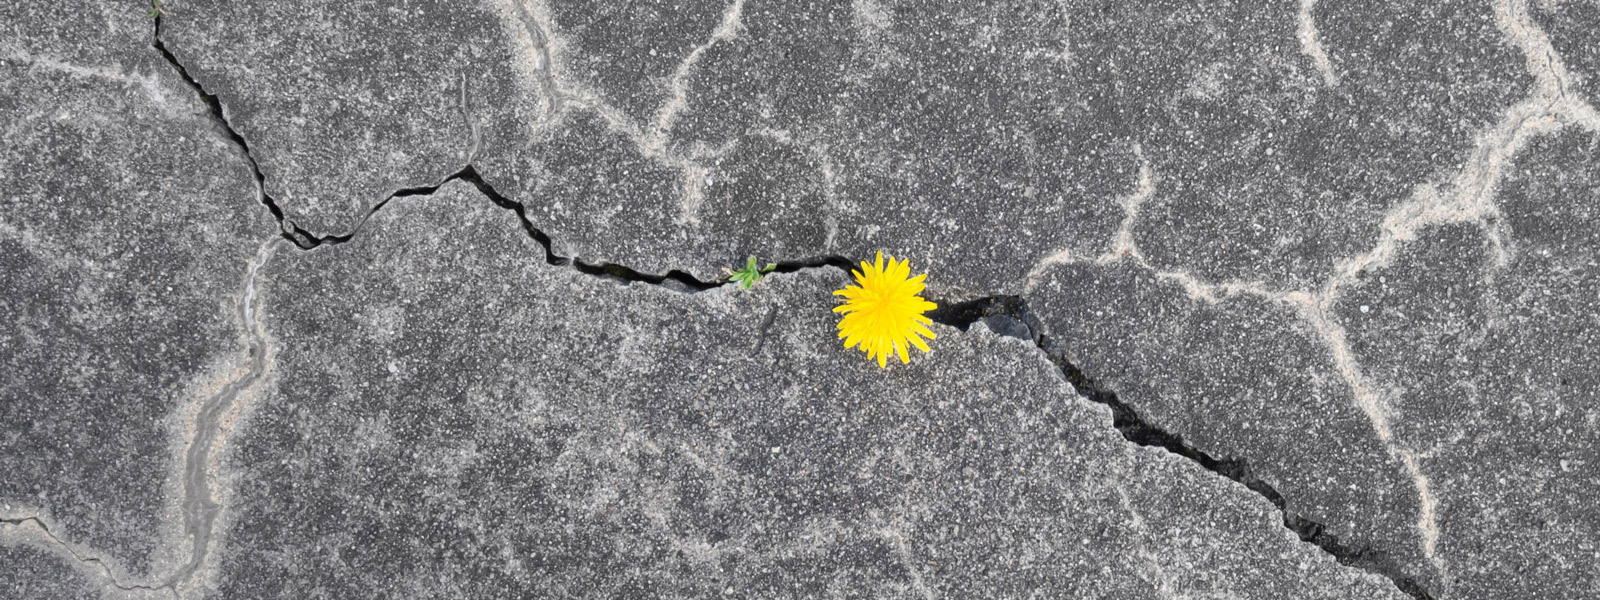 yellow flower growing in crack in concrete